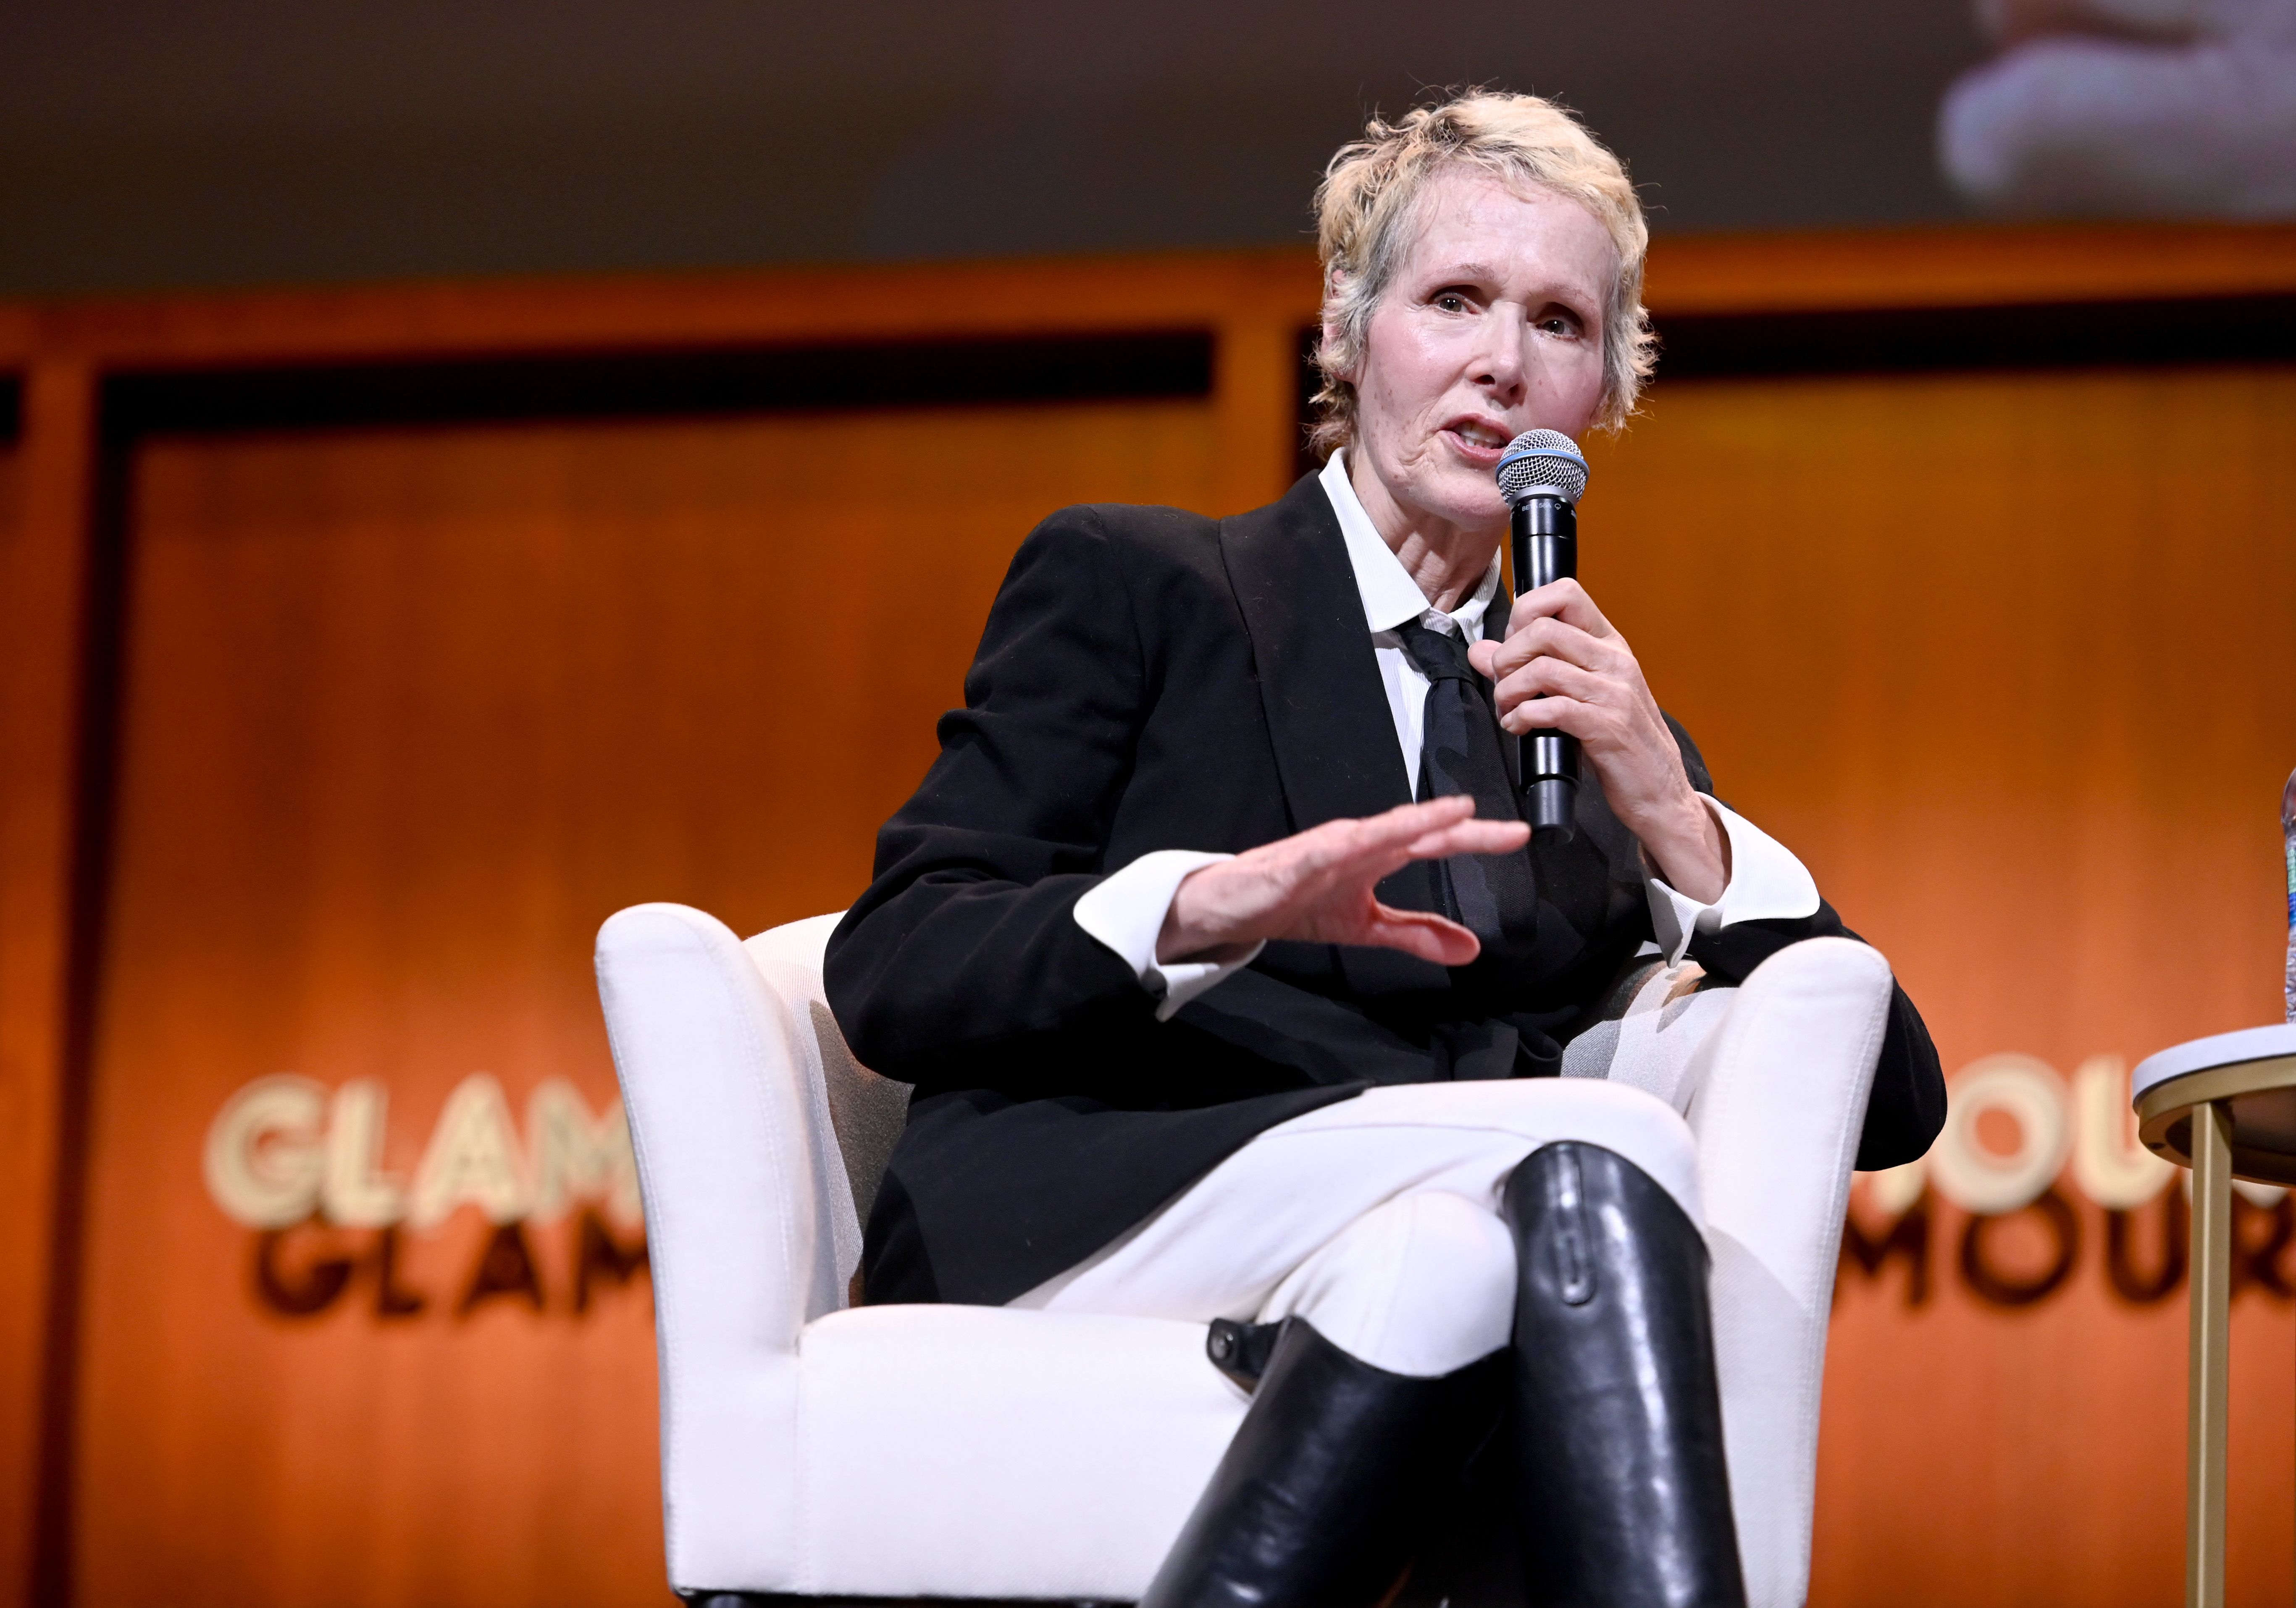 E. Jean Carroll says Trump raped her. She's suing him. Now she's been fired from Elle.